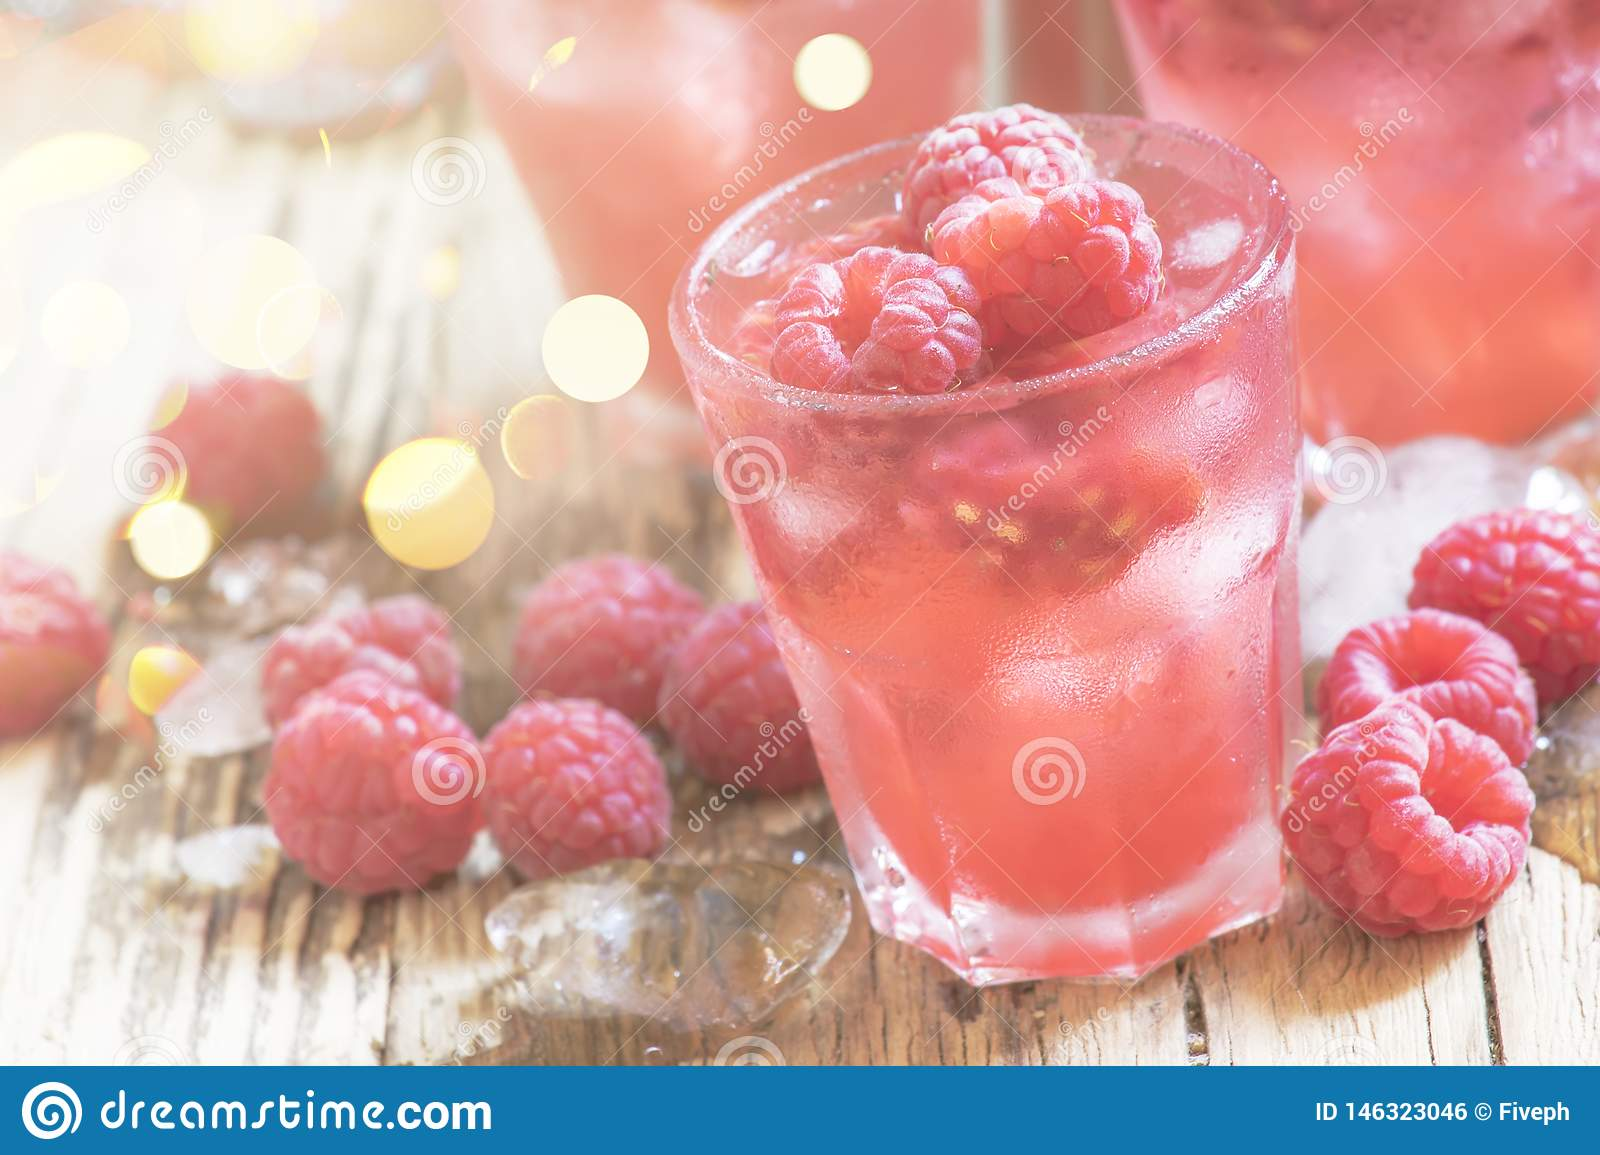 Cold Raspberry Cocktail With Ice, Pink Summer Berry